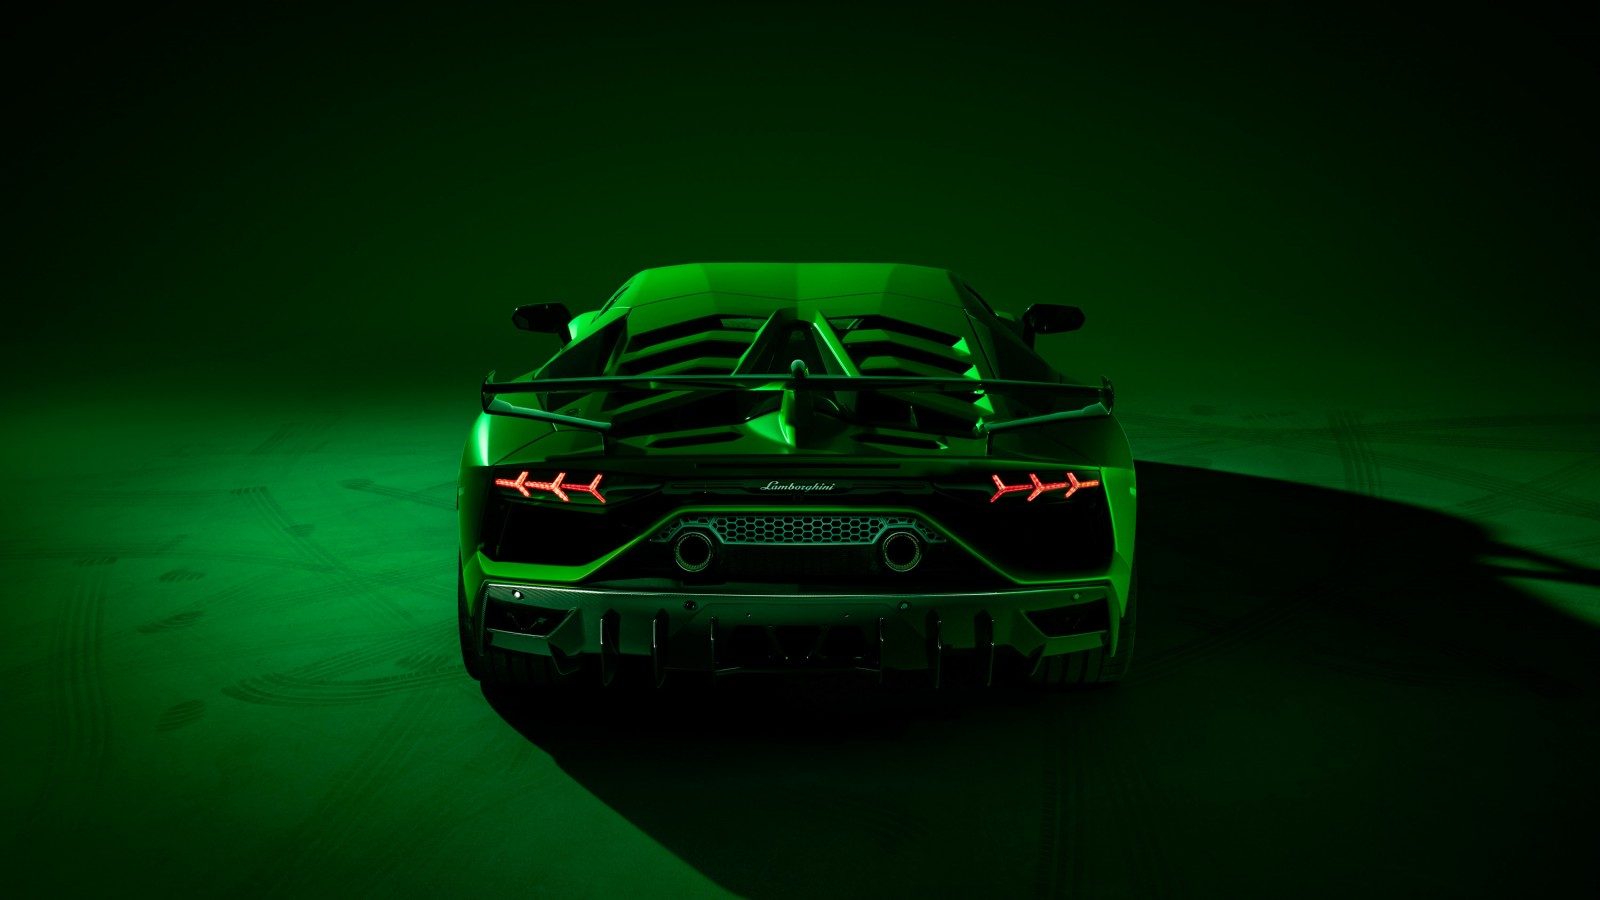 2019 Lamborghini Aventador SVJ 4 Wallpaper | HD Car ...